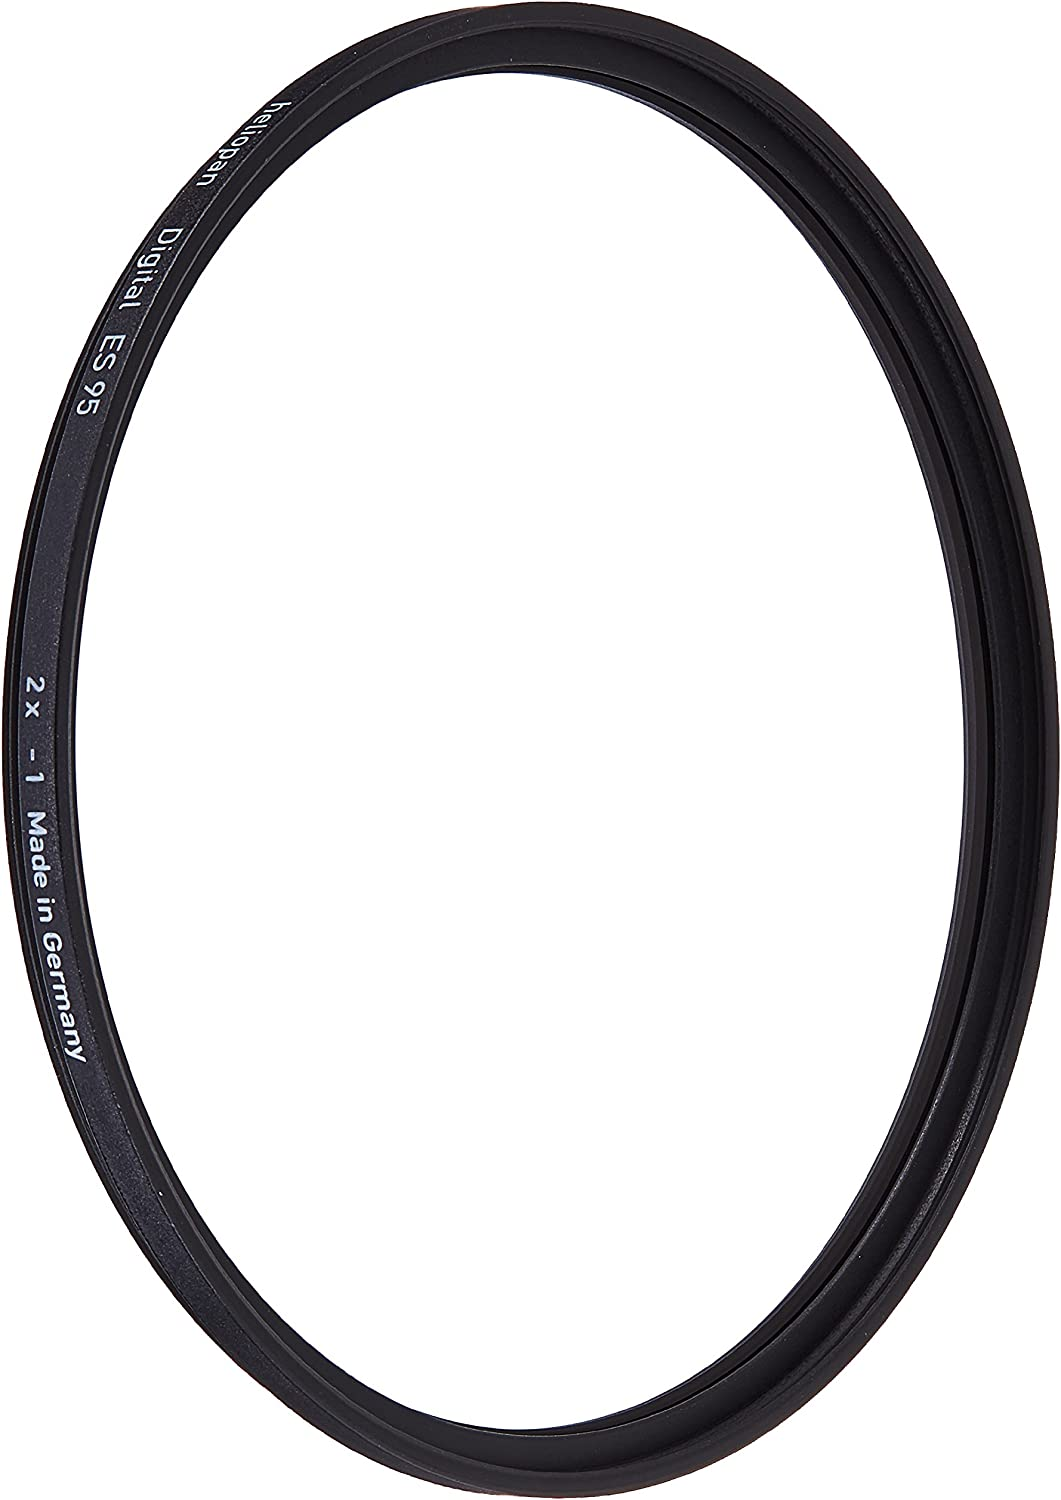 707789 with specialty Schott glass in floating brass ring Heliopan 77mm Neutral Density 3.0 Filter